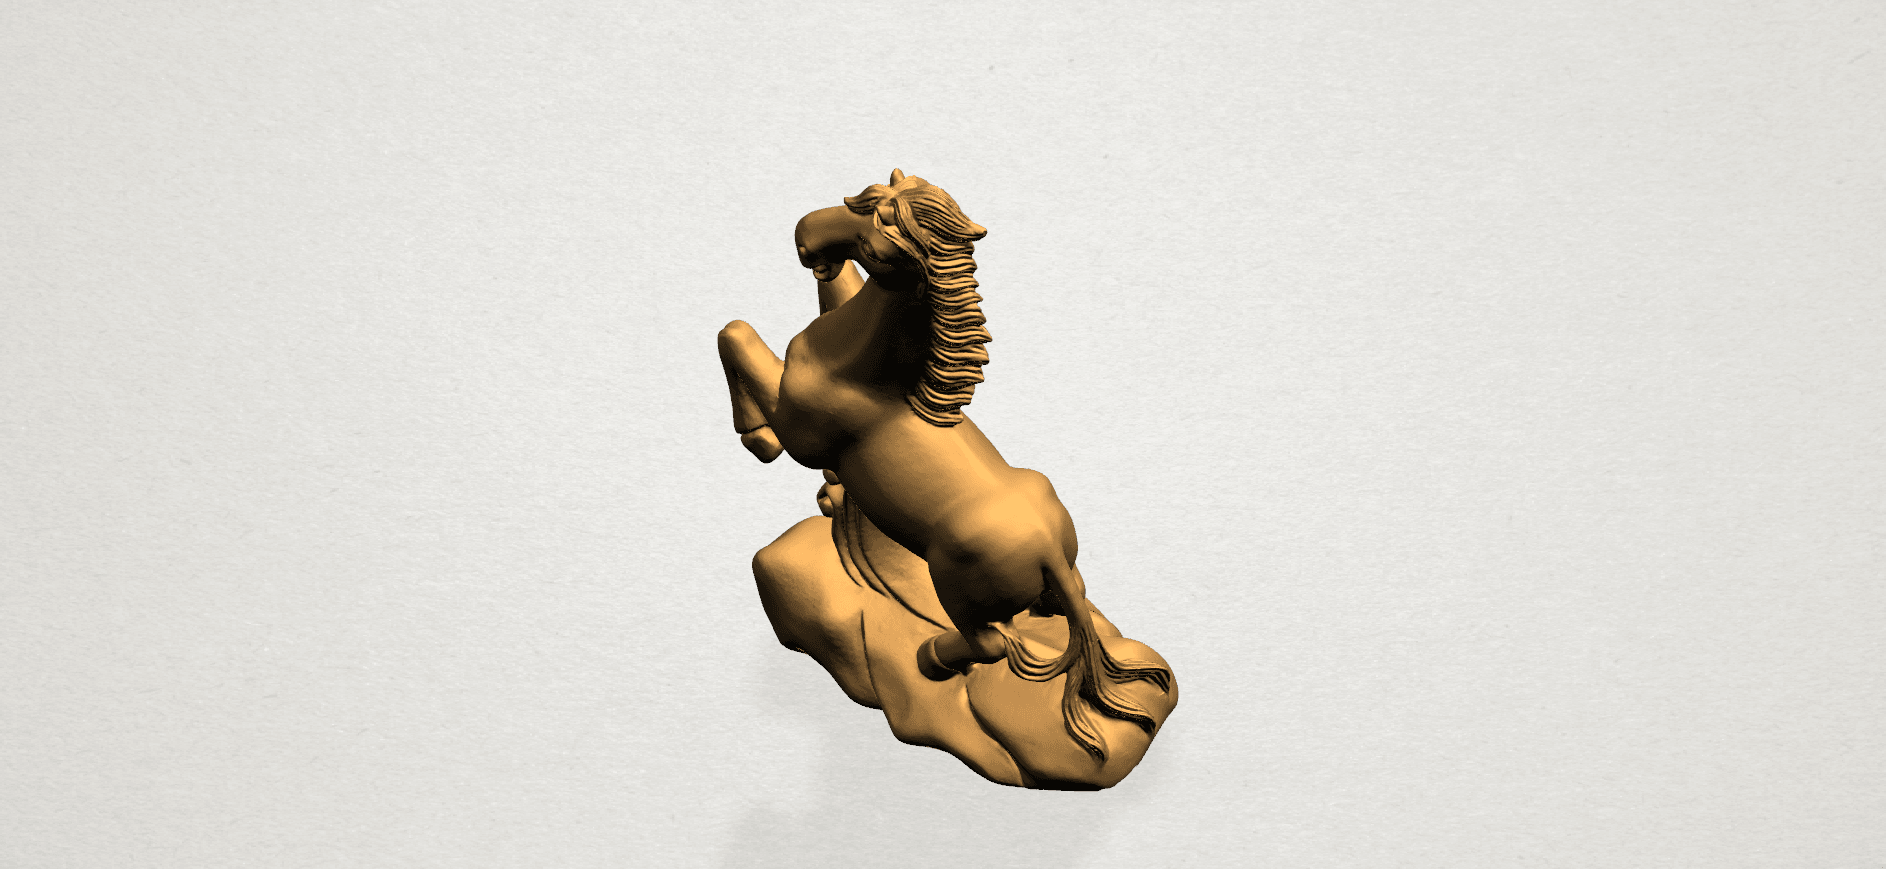 Chinese Horoscope07-A07.png Download free STL file Chinese Horoscope 07 Horse • 3D printer model, GeorgesNikkei